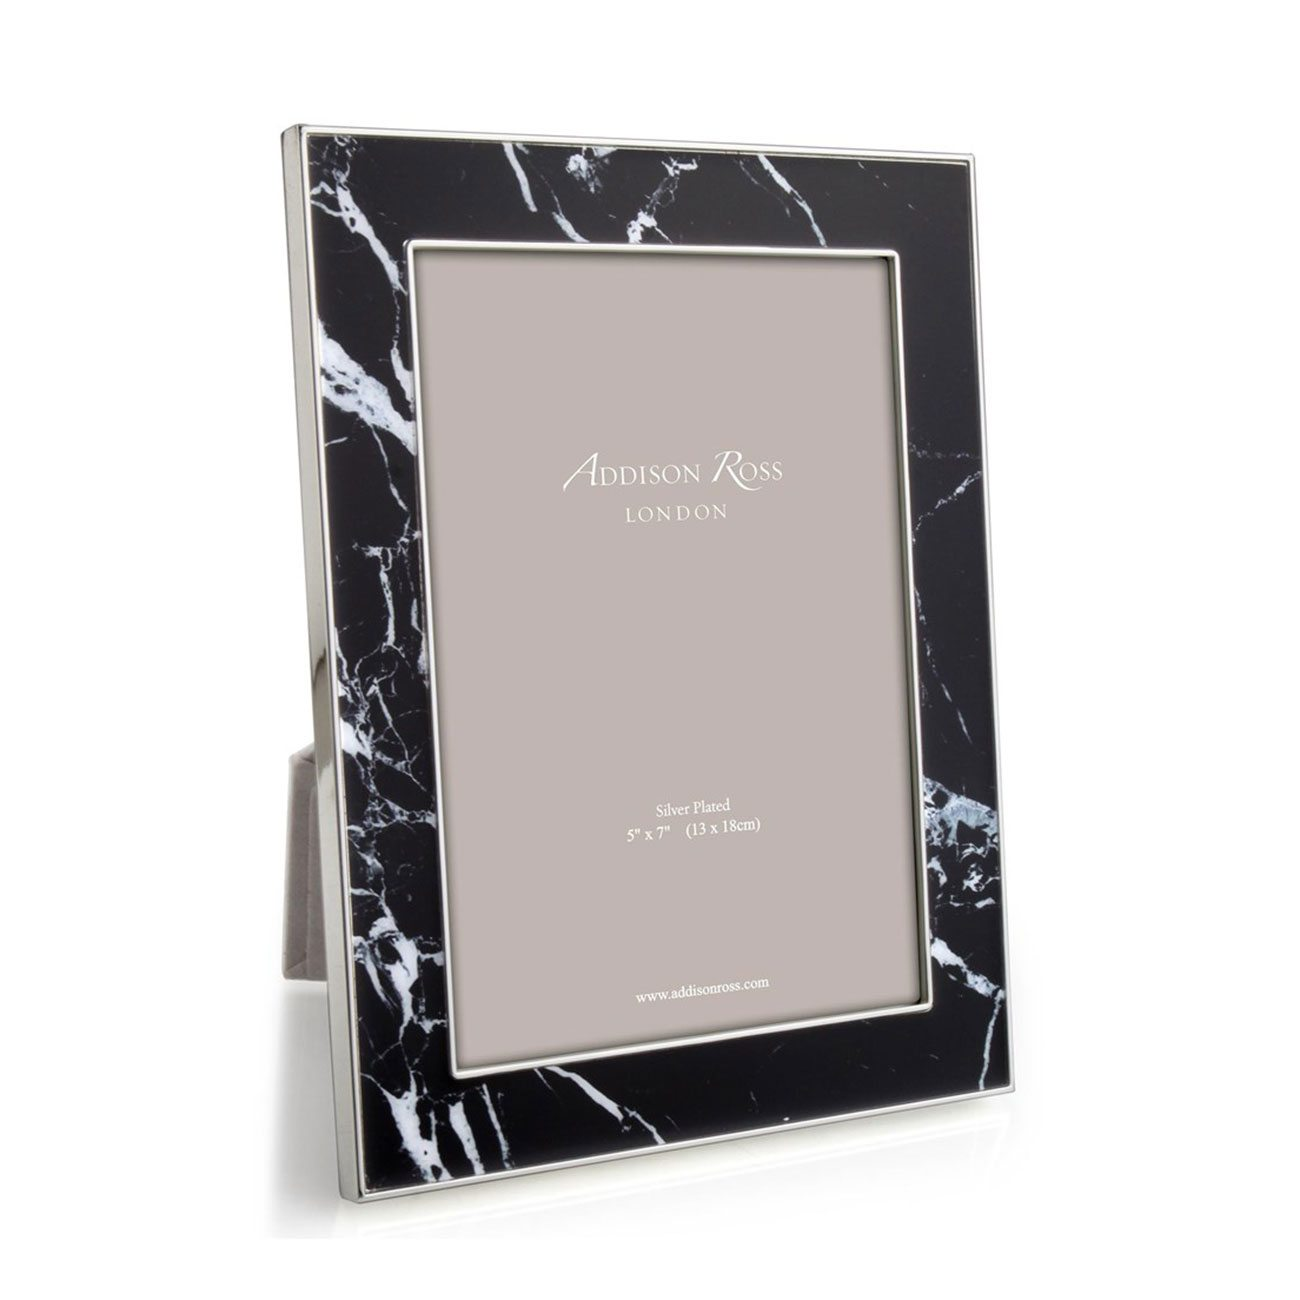 Addison Ross Black Marble Frame 8x10